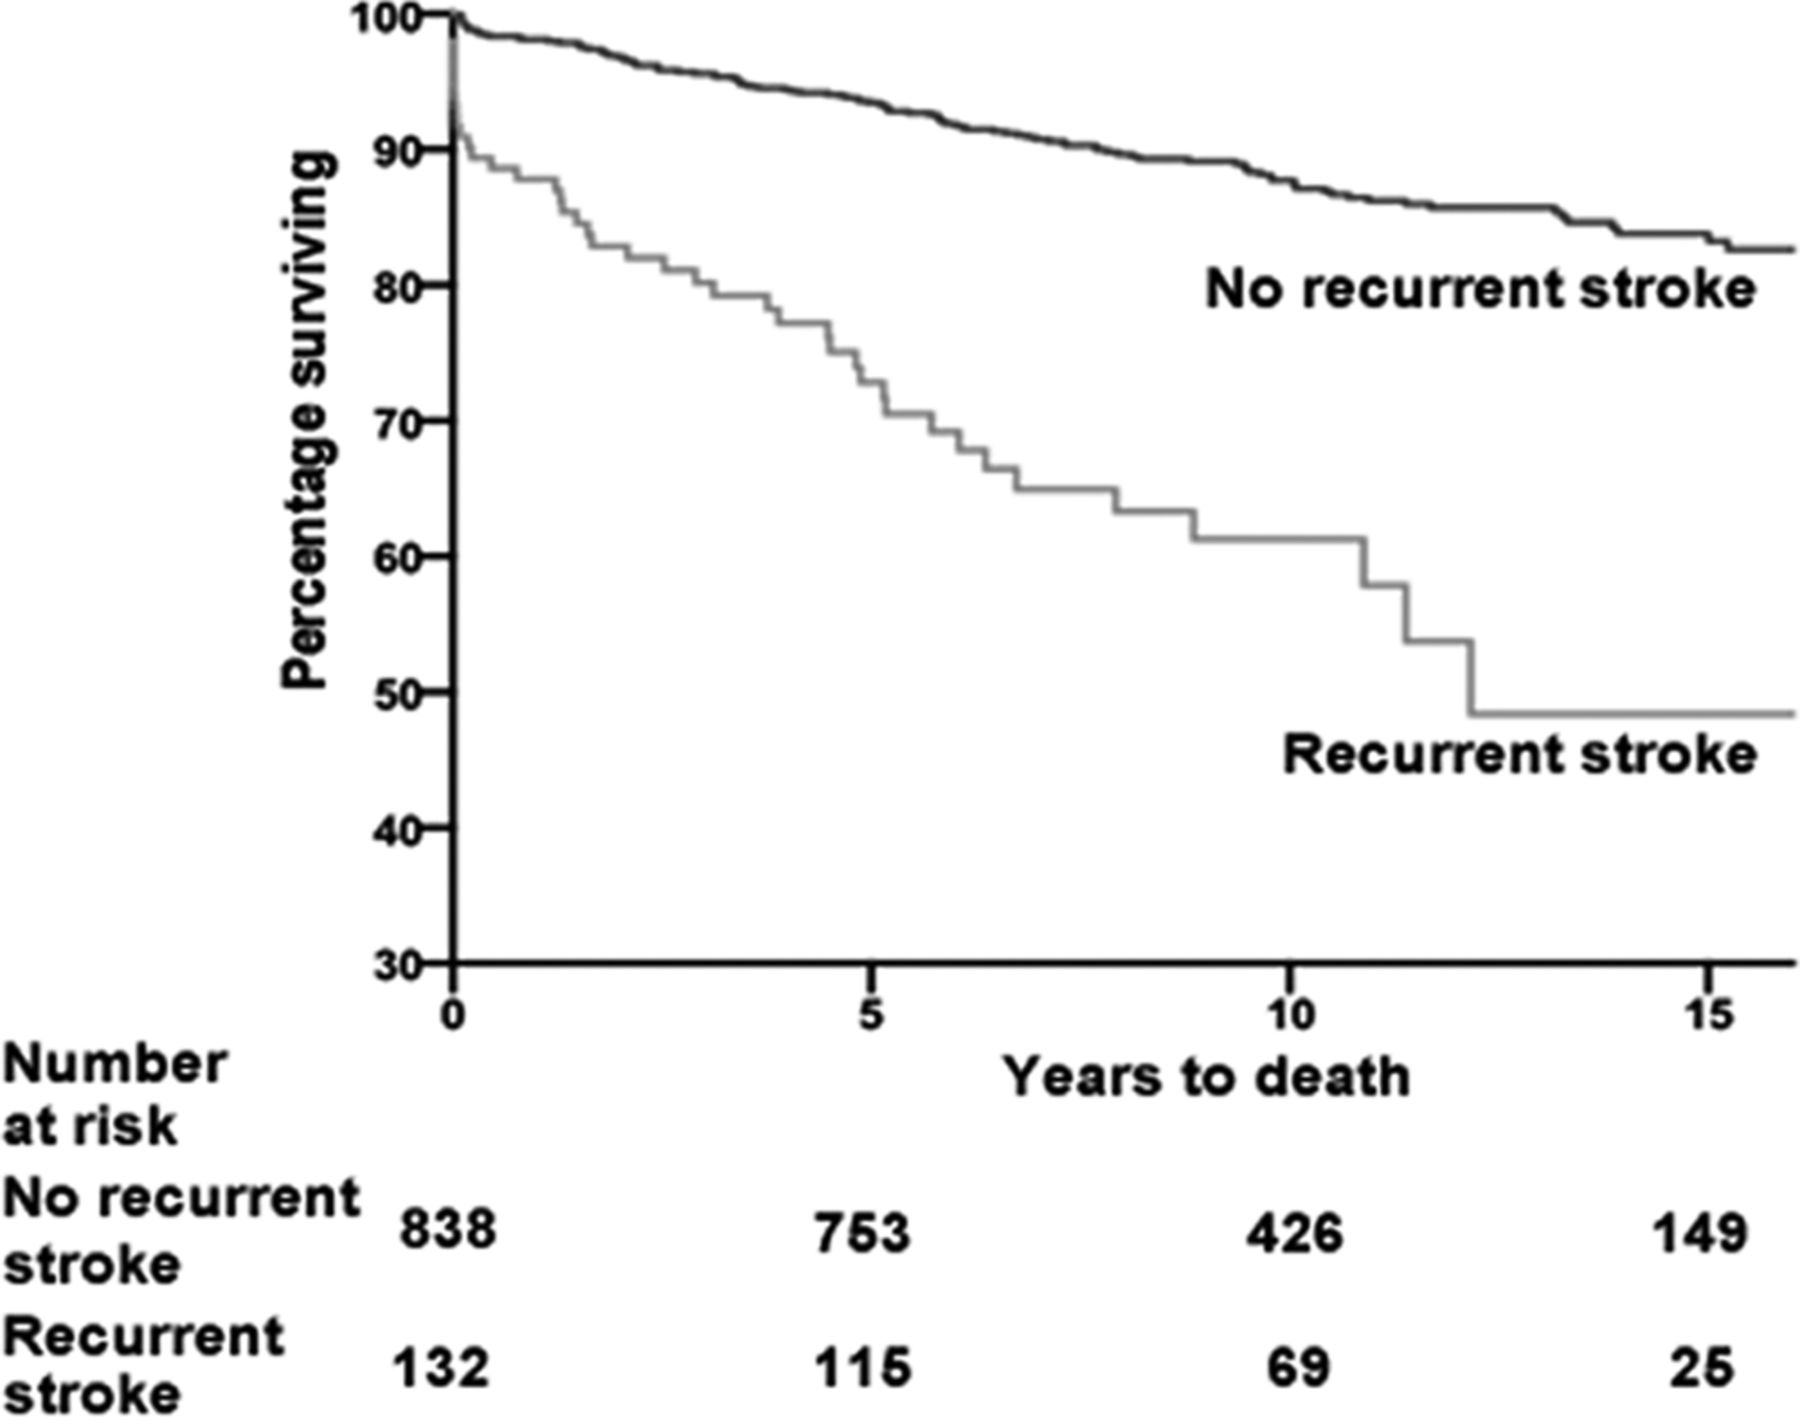 Long-Term Mortality After First-Ever and Recurrent Stroke in